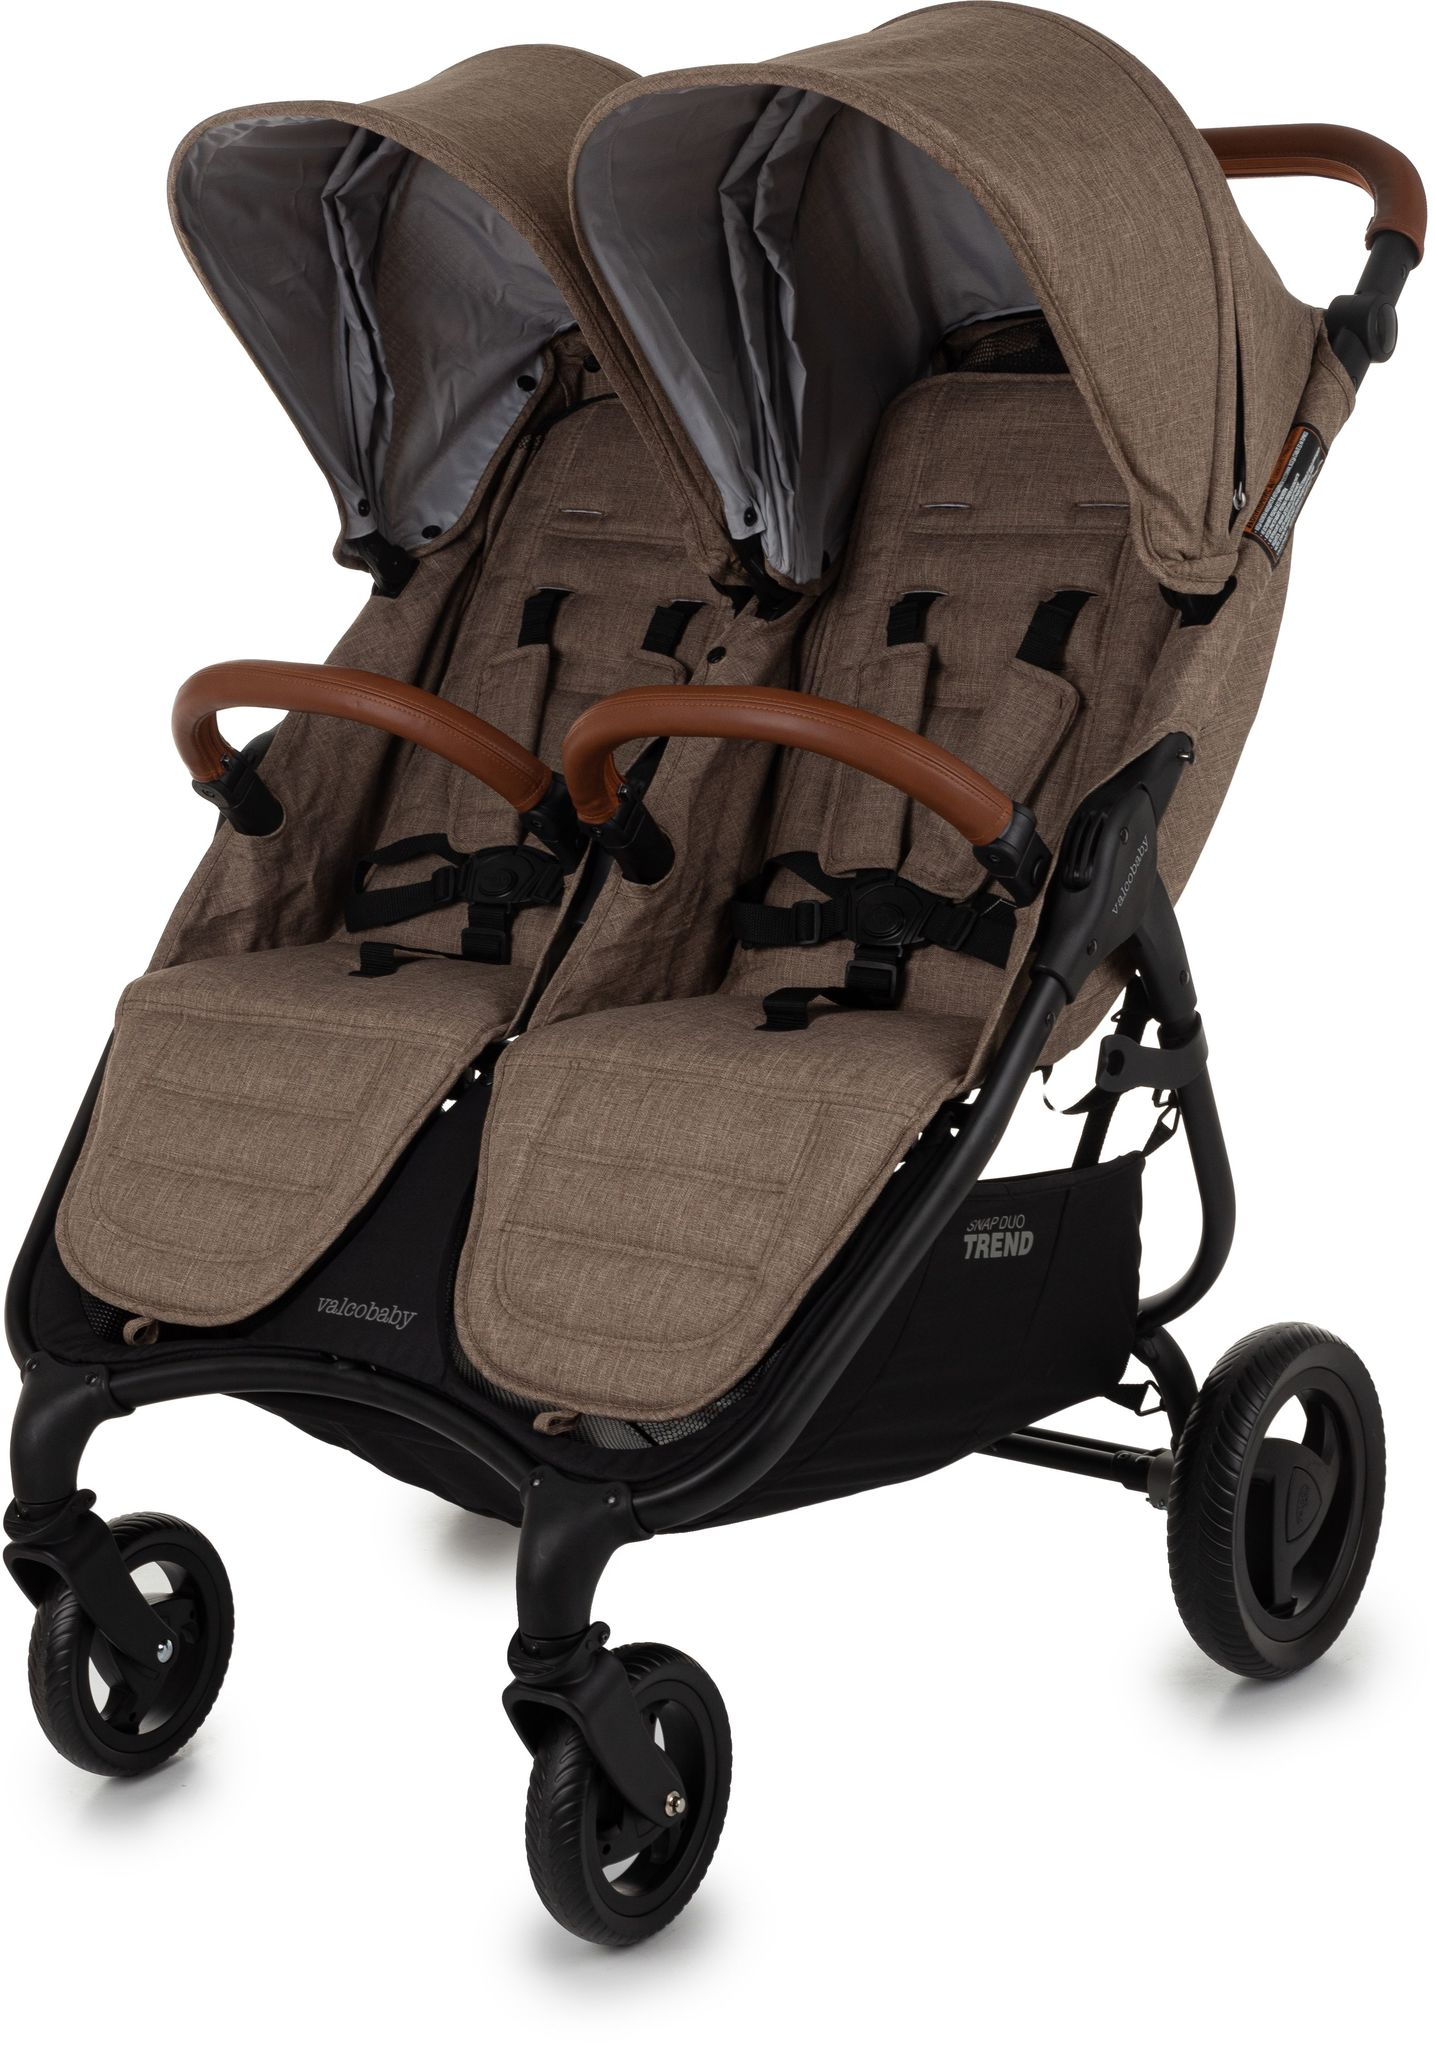 VALCO BABY SNAP DUO TREND VALCO BABY SNAP DUO TREND / 0048 3vSa3V8Q.jpeg